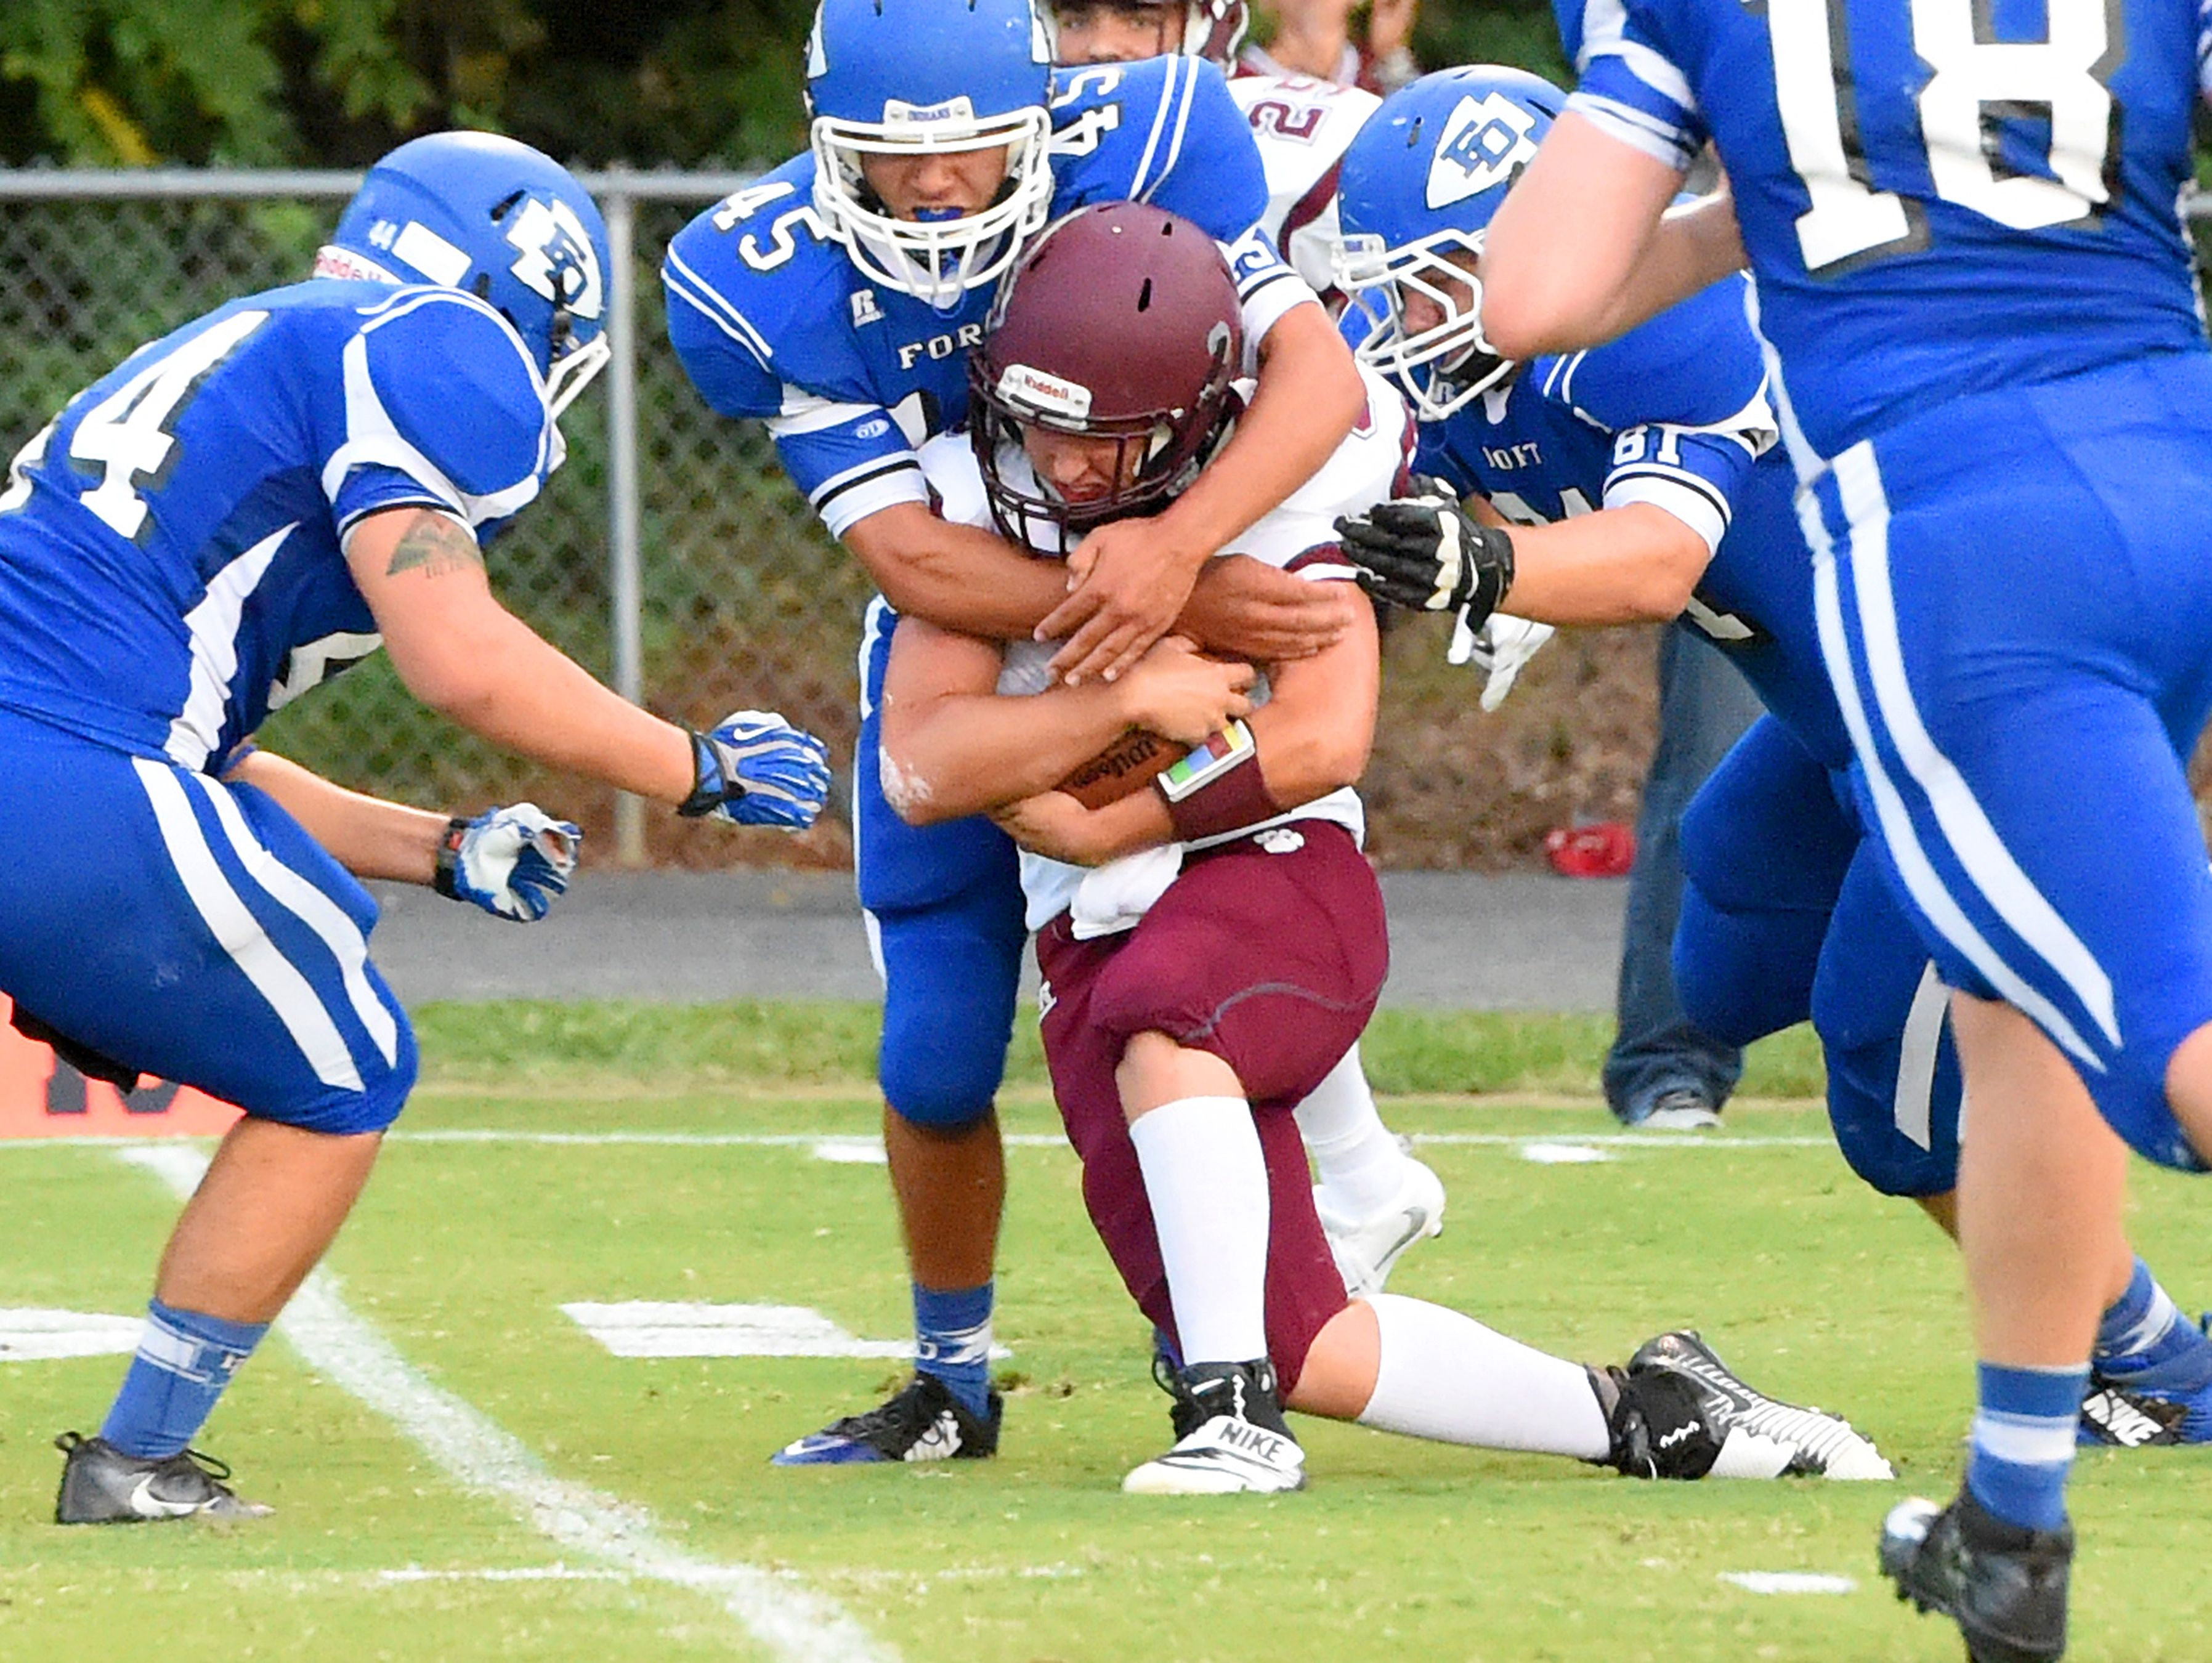 Stuarts Draft quarterback Garrett Campbell is wrapped up by Fort Defiance's Miguel Garcia during a football game played in Fort Defiance on Friday, Sept. 2, 2016.